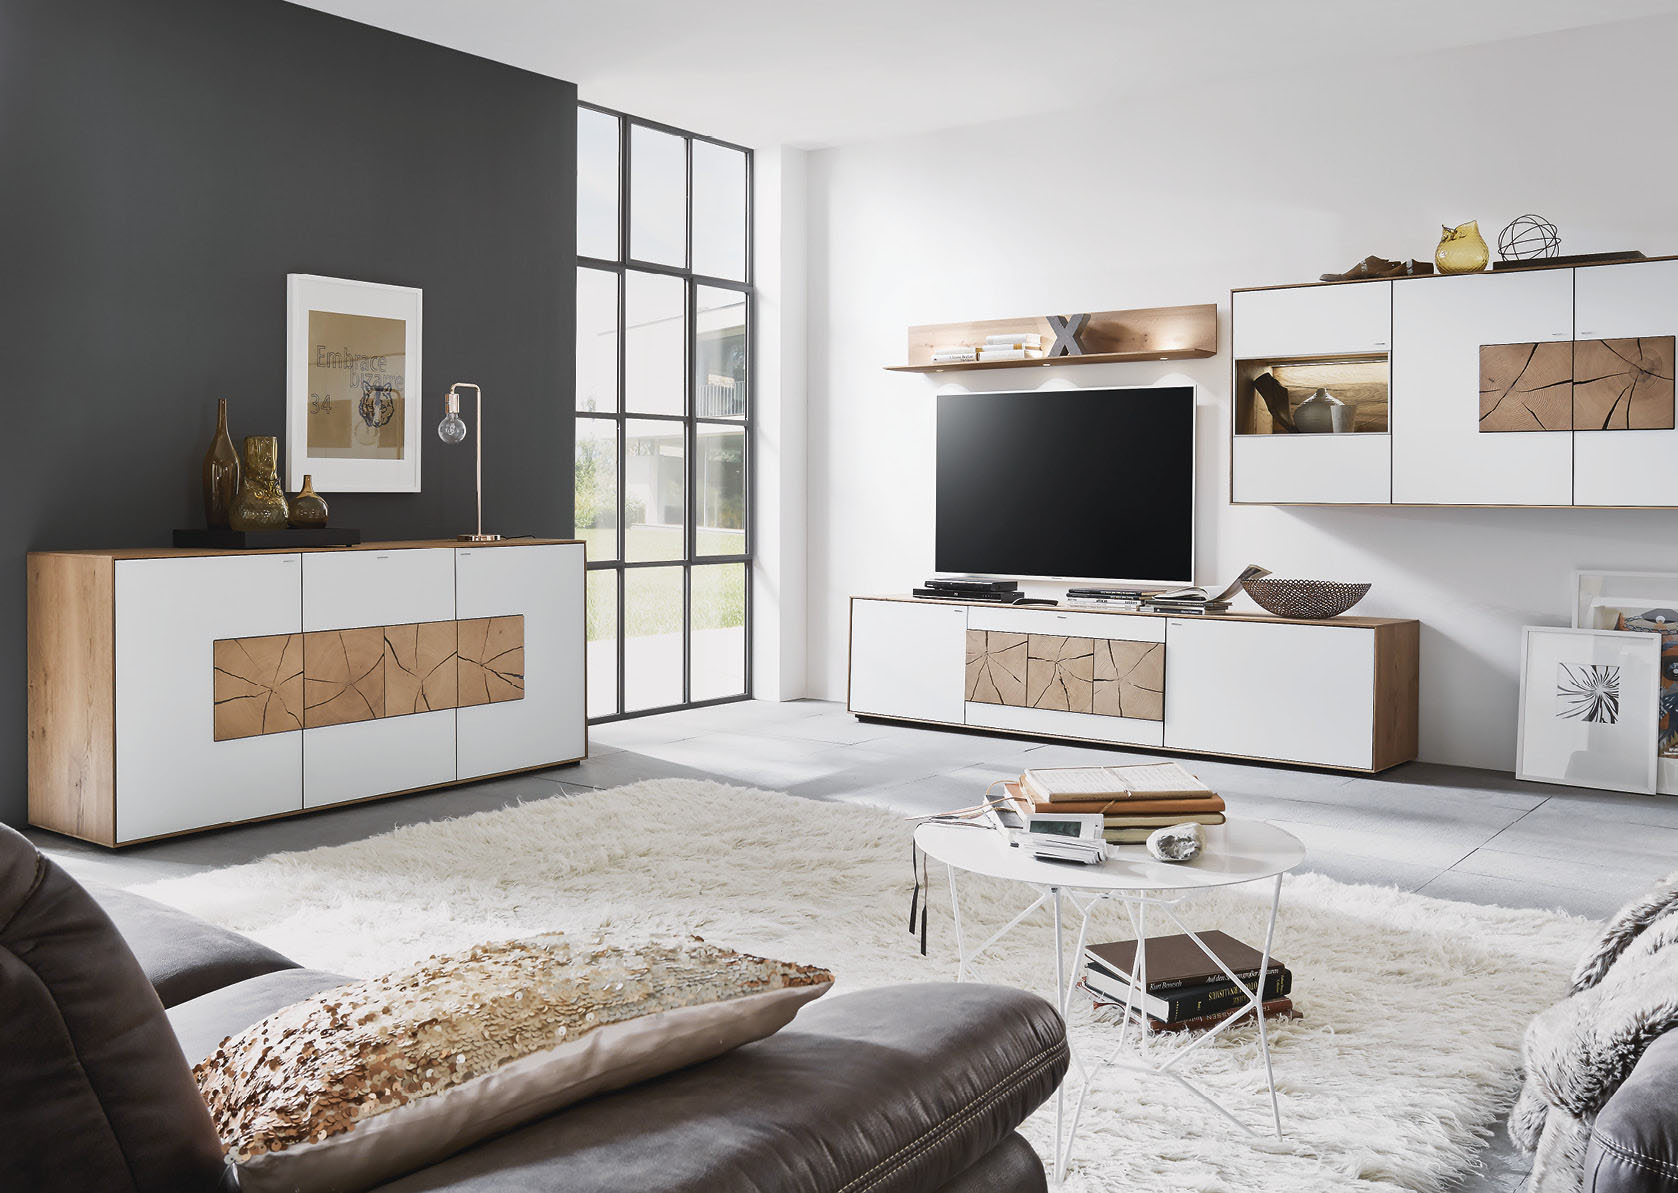 wohnw nde m bel ostler gmbh in amberg. Black Bedroom Furniture Sets. Home Design Ideas